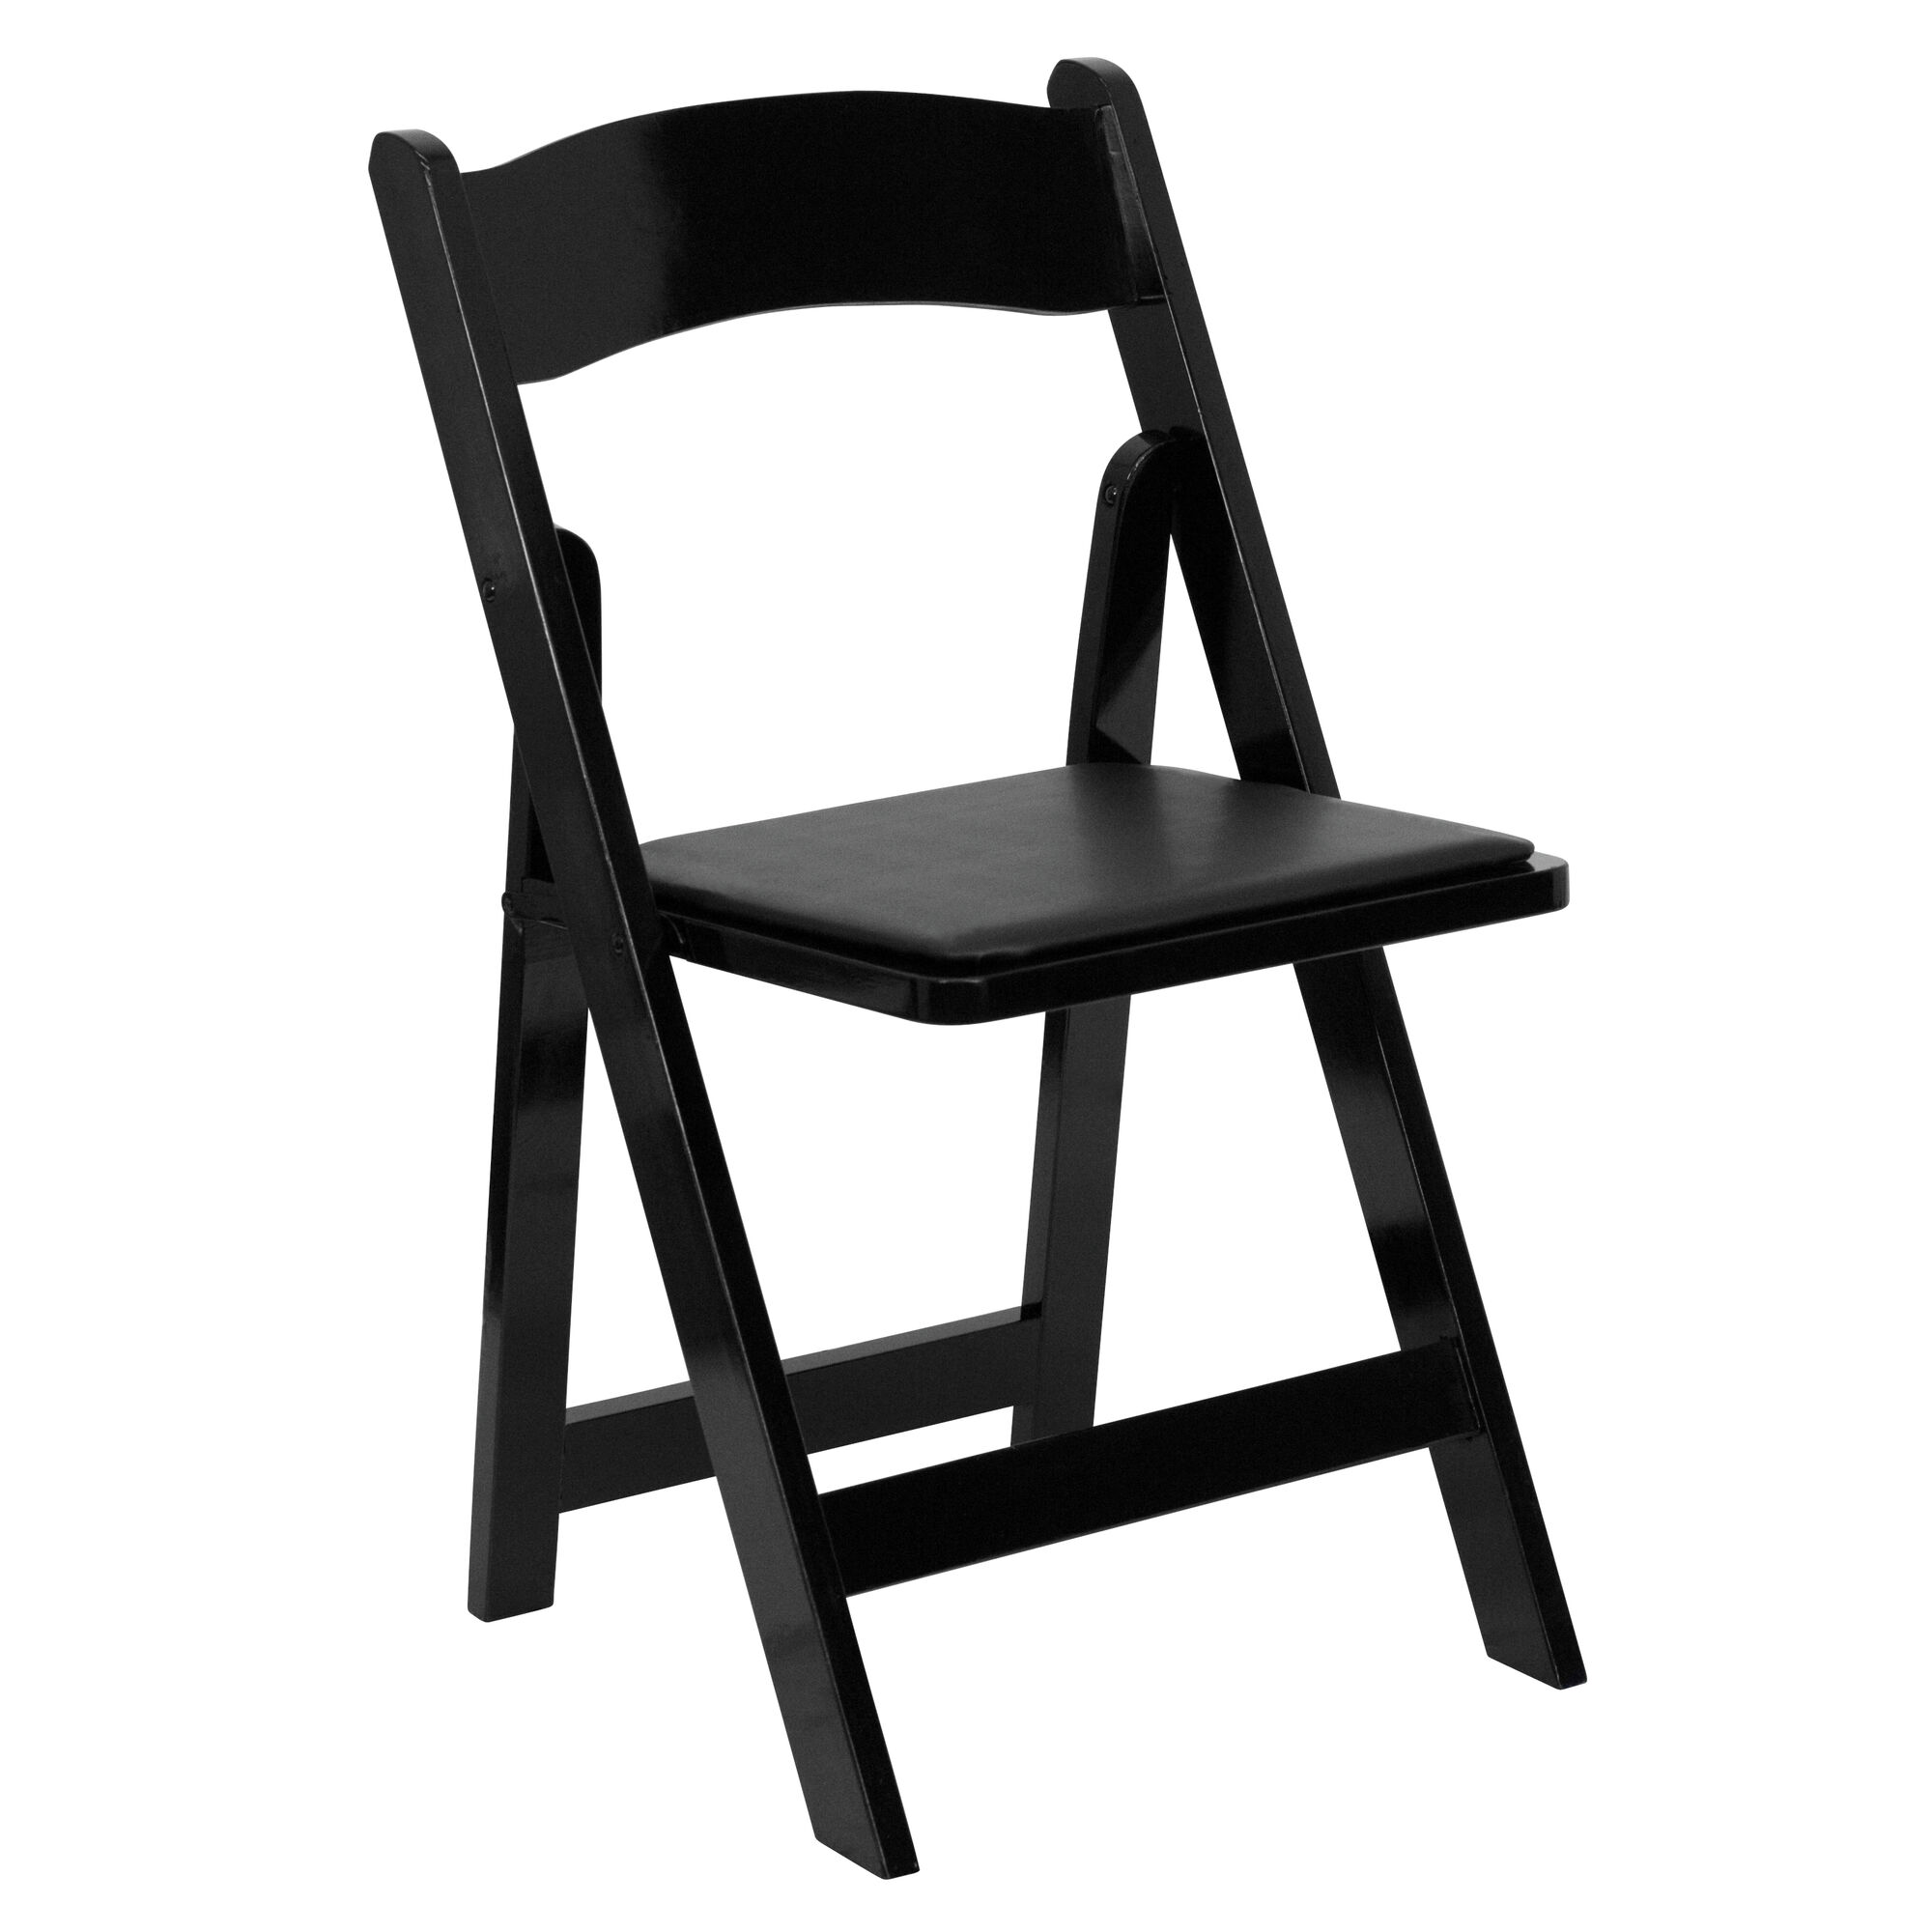 Our Hercules Series Black Wood Folding Chair With Vinyl